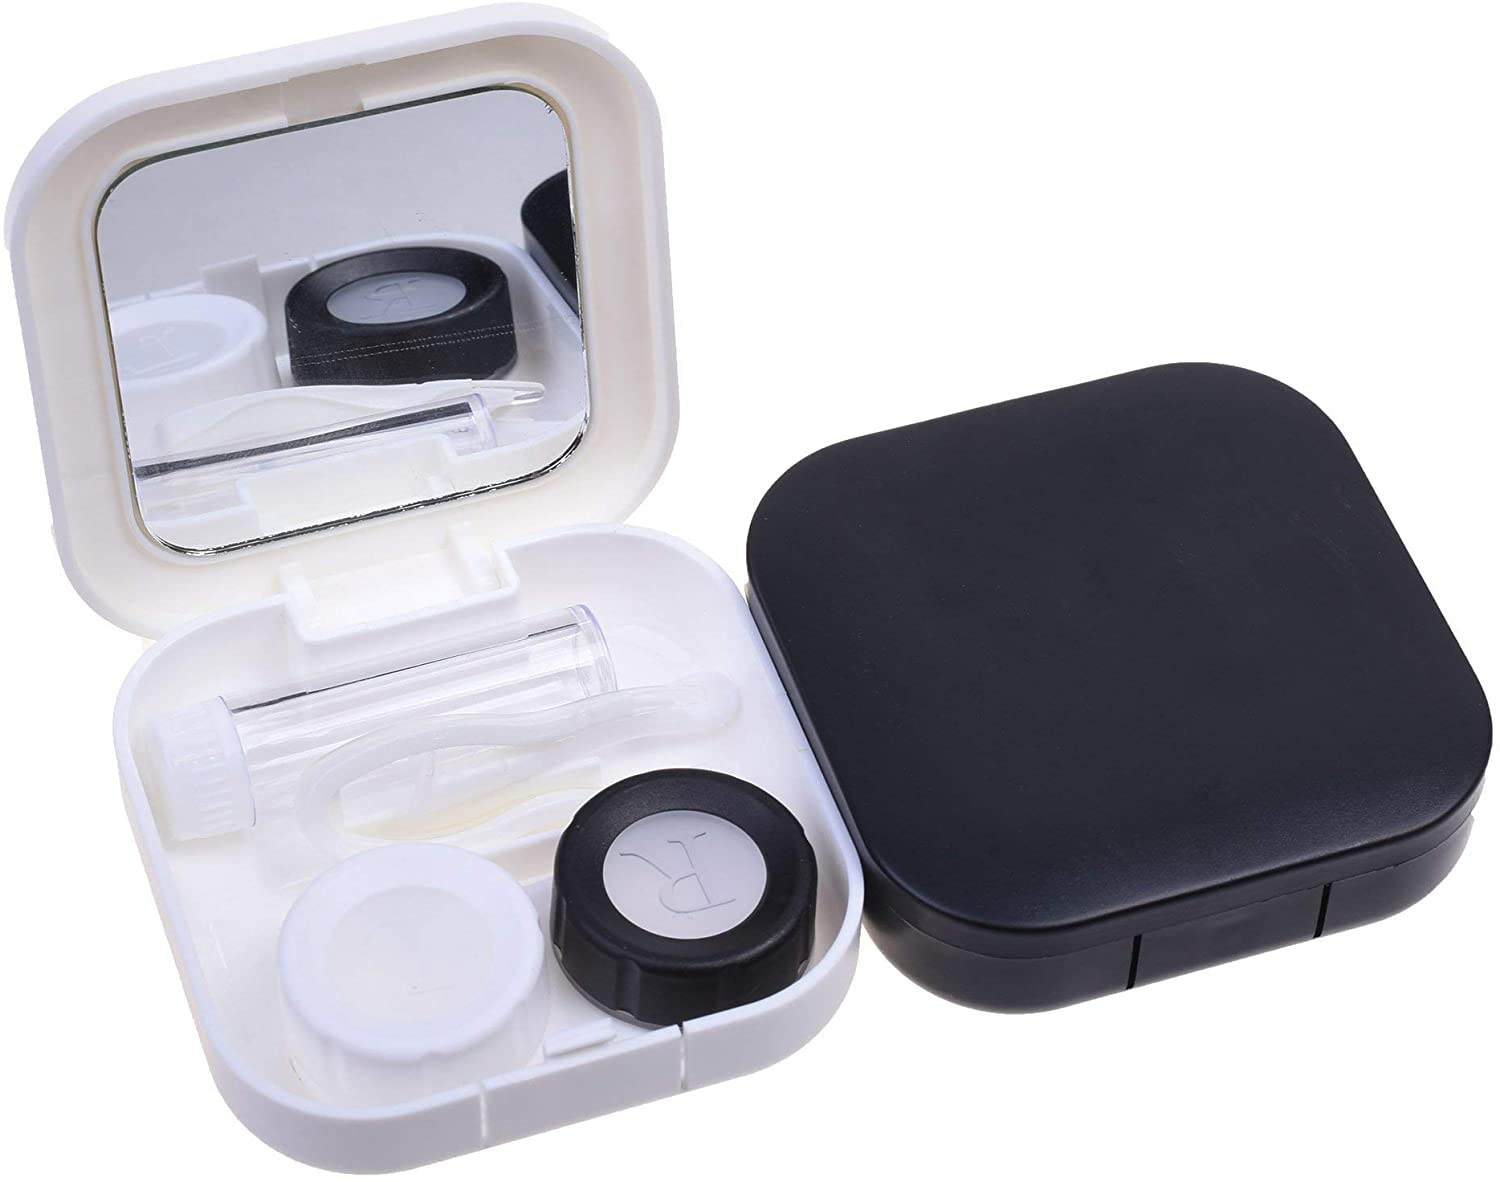 Cosmos 2 Pcs Simple Contact Lens Travel Case Contact Lenses Box Container Holder Kit with Mirror